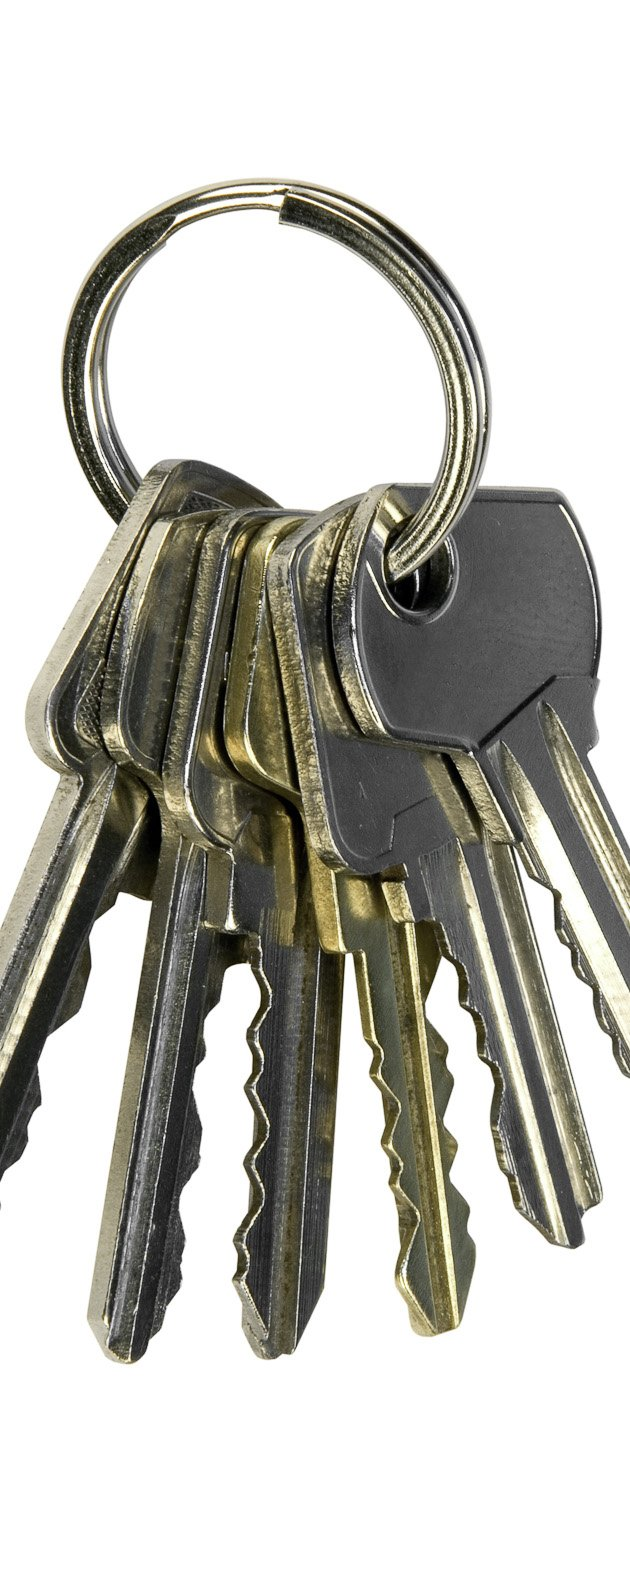 Lost Key Locksmith Service  Locksmith Service In Queens. Best Orthopedic Surgeons In California. Health Insurance For Kids Florida. Business Continuity Risks Roth Ira Calulator. How To Advertise For A Small Business. Cheap Phone And Internet Service. Blueshield Medical Insurance. Billing And Collections Jobs. Kia Dealers In Minnesota 529 Plan Performance